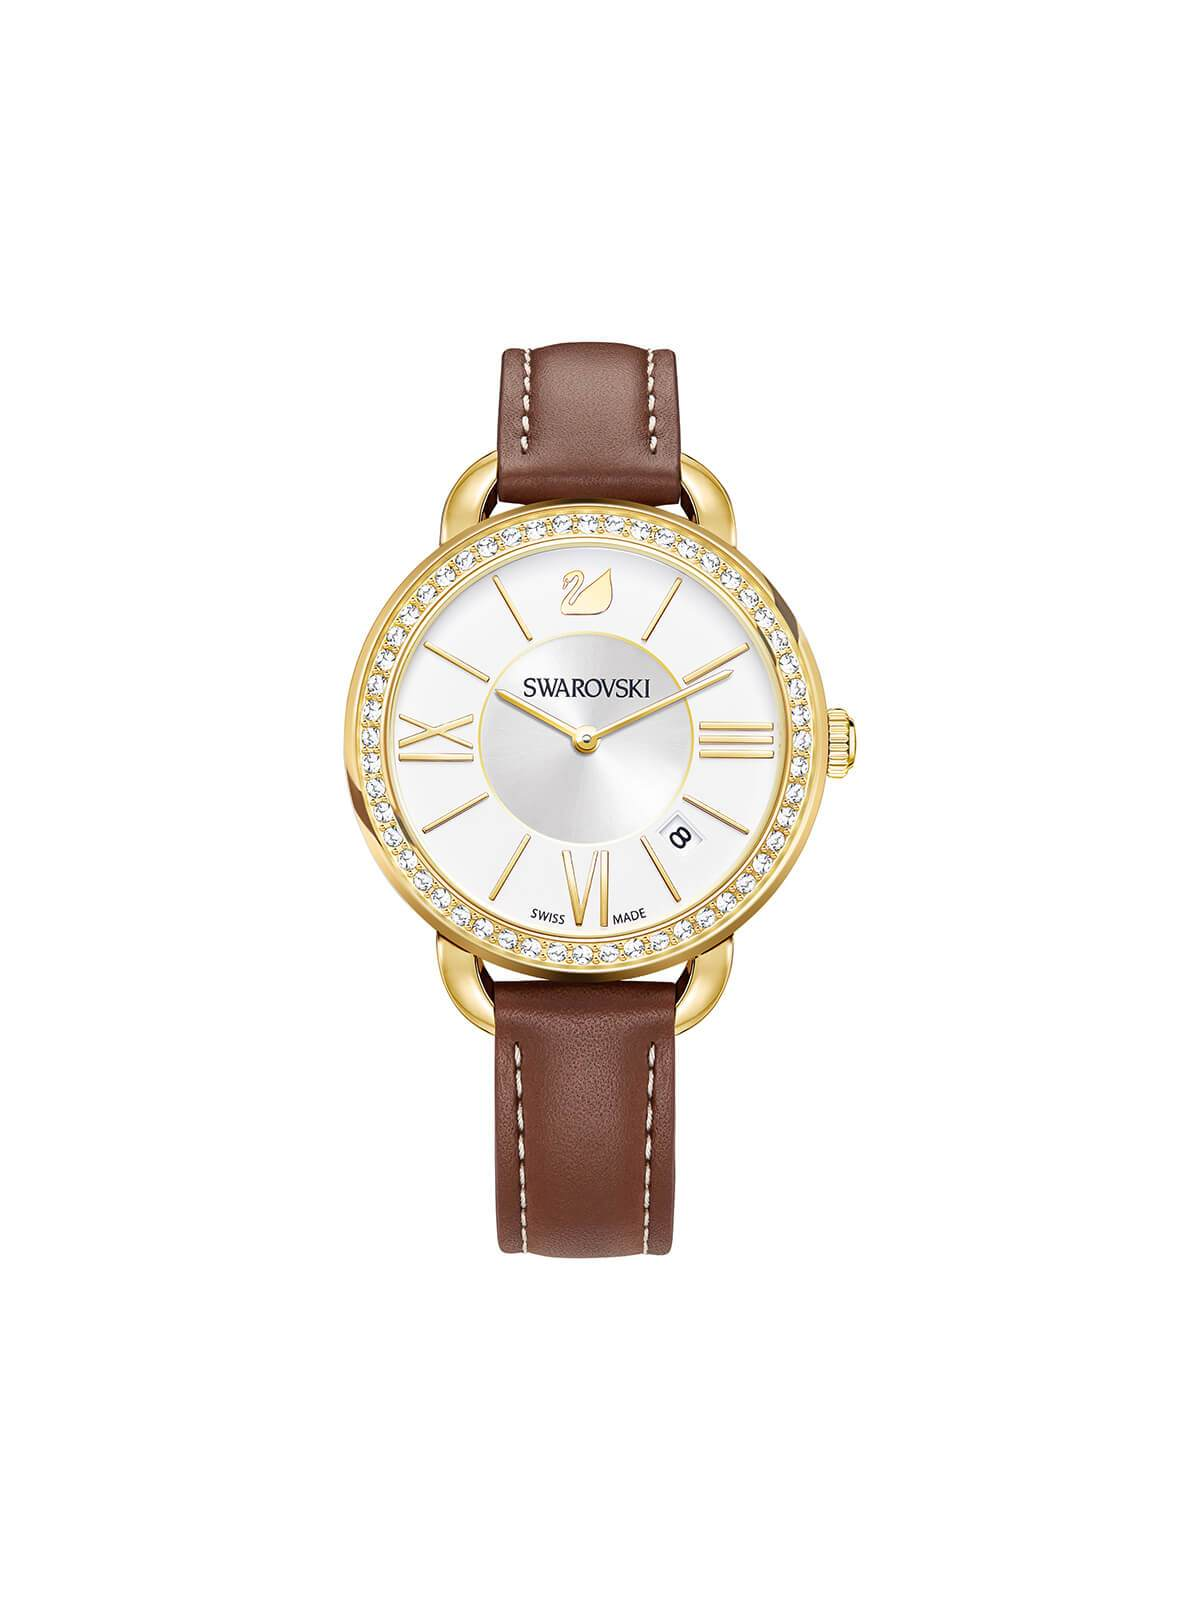 Swarovski Aila Day Gold Plated Stainless Steel Watch on Leather Strap 5095940